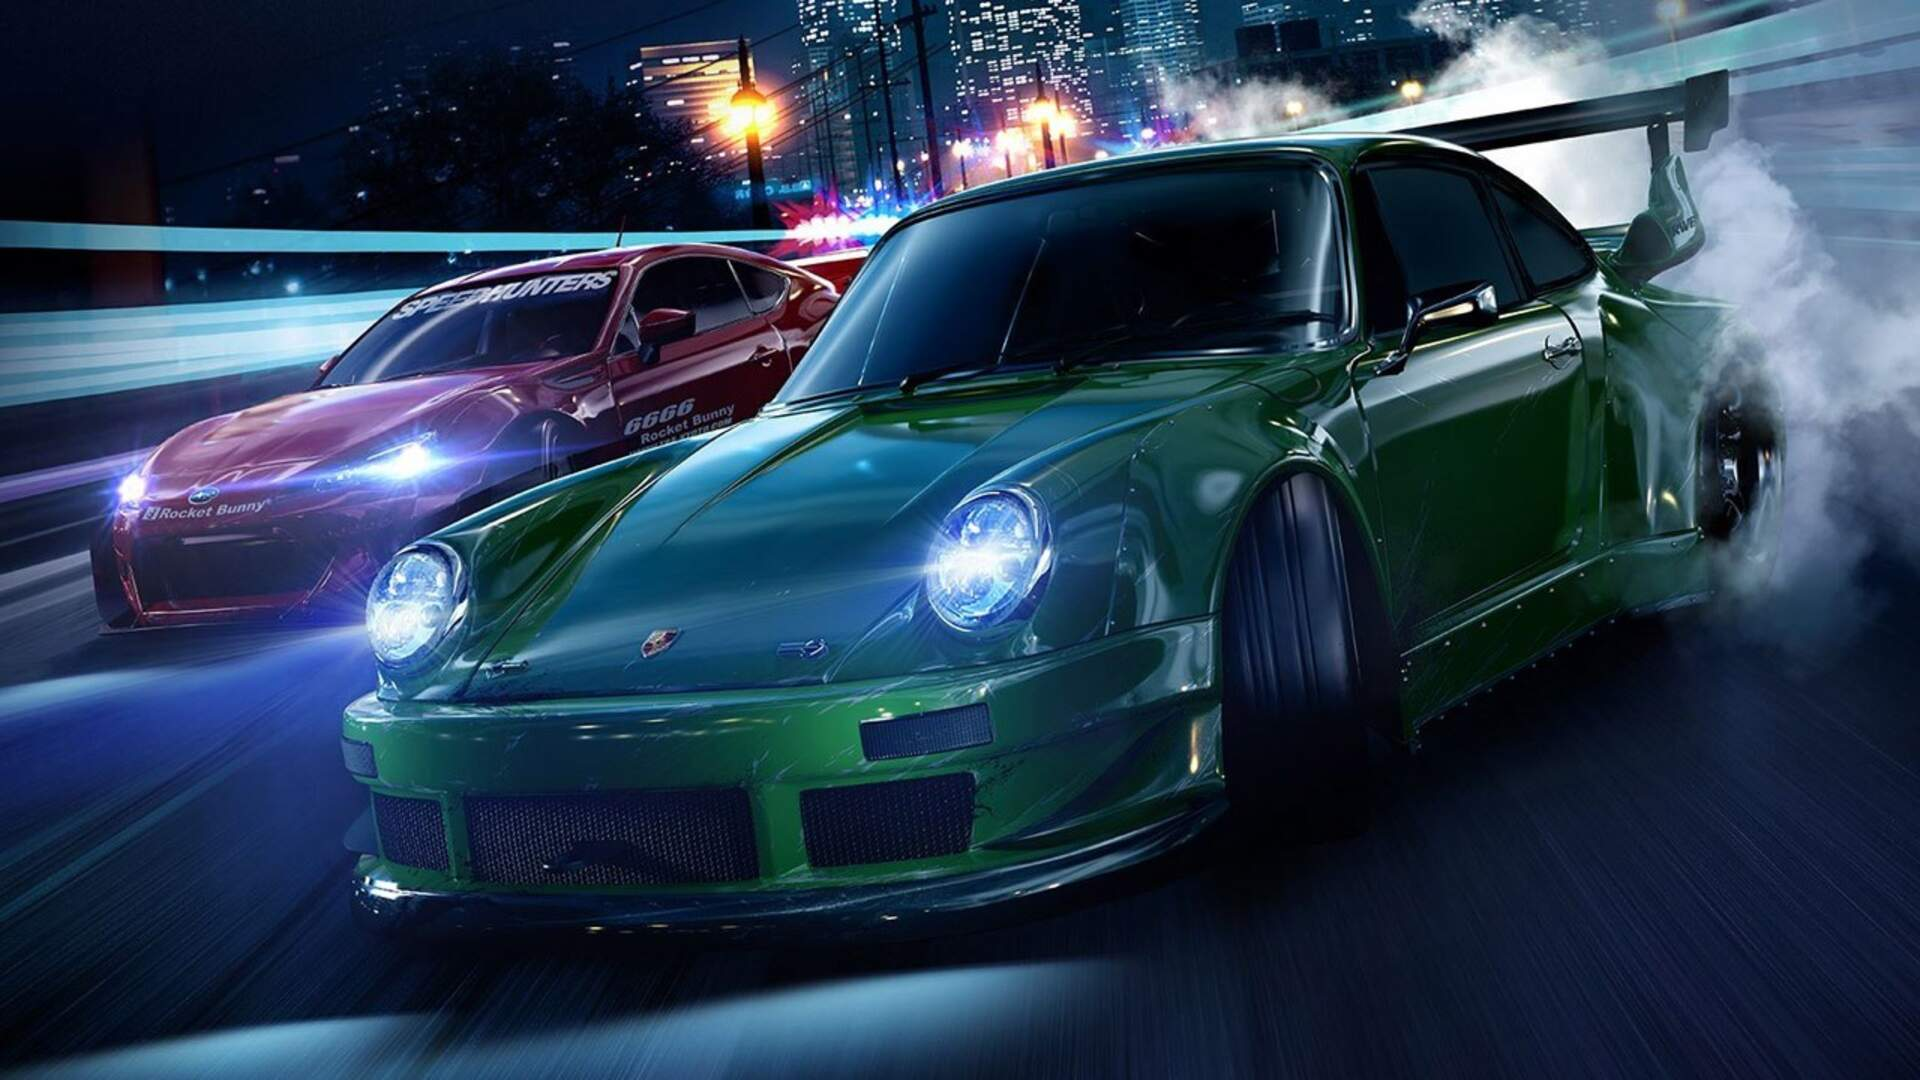 Need for Speed Countdown Clock Suggests a Pre-Gamescom Reveal for New Game